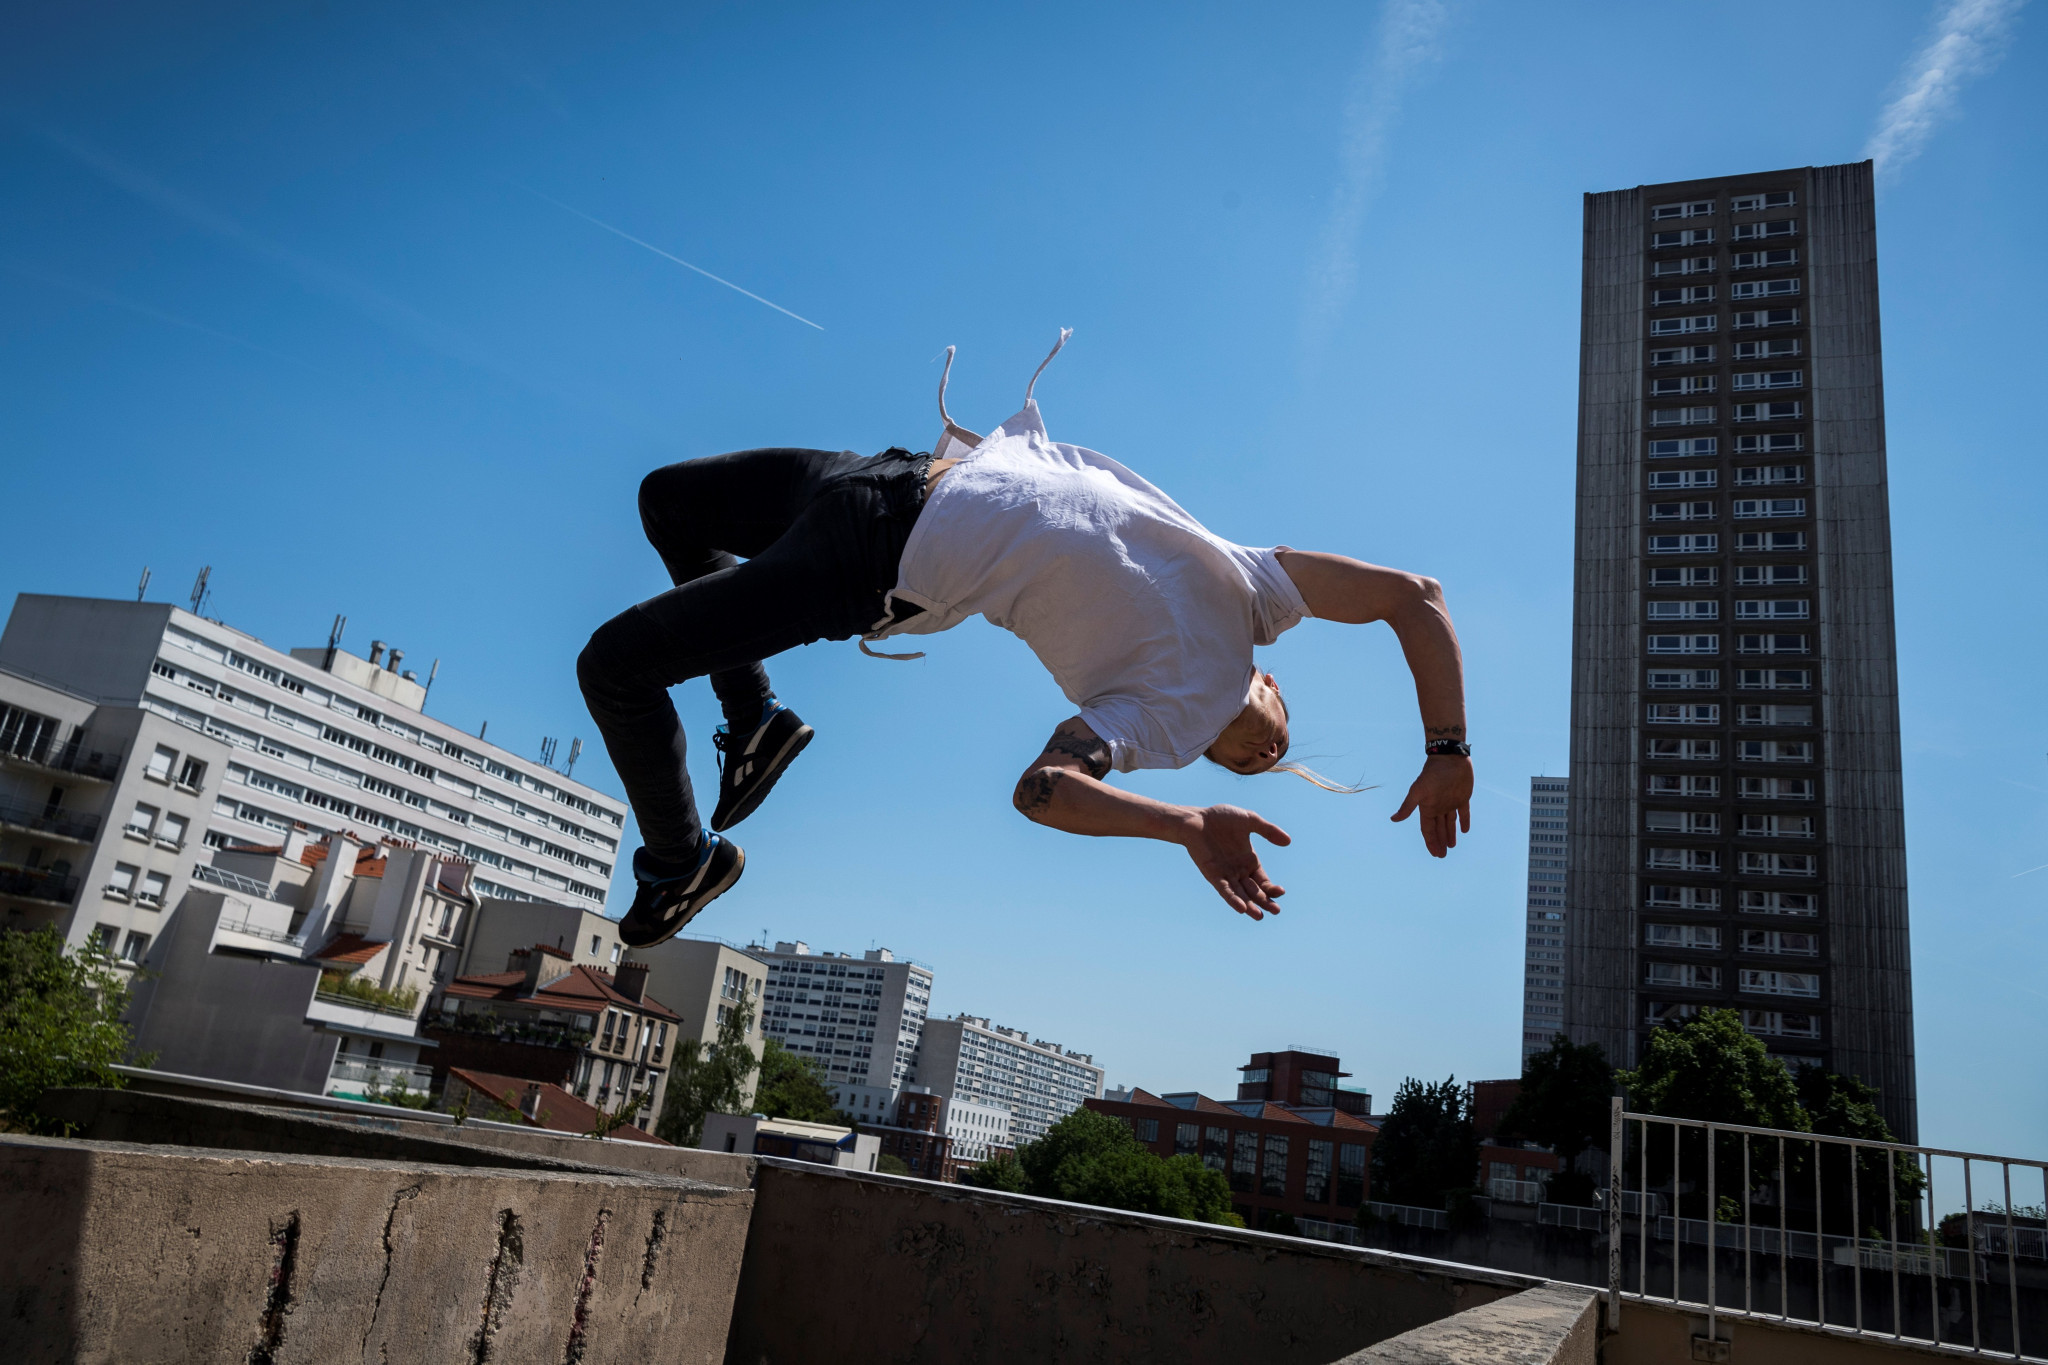 Tonnoir bidding for home soil redemption as Parkour World Cup resumes in Montpellier